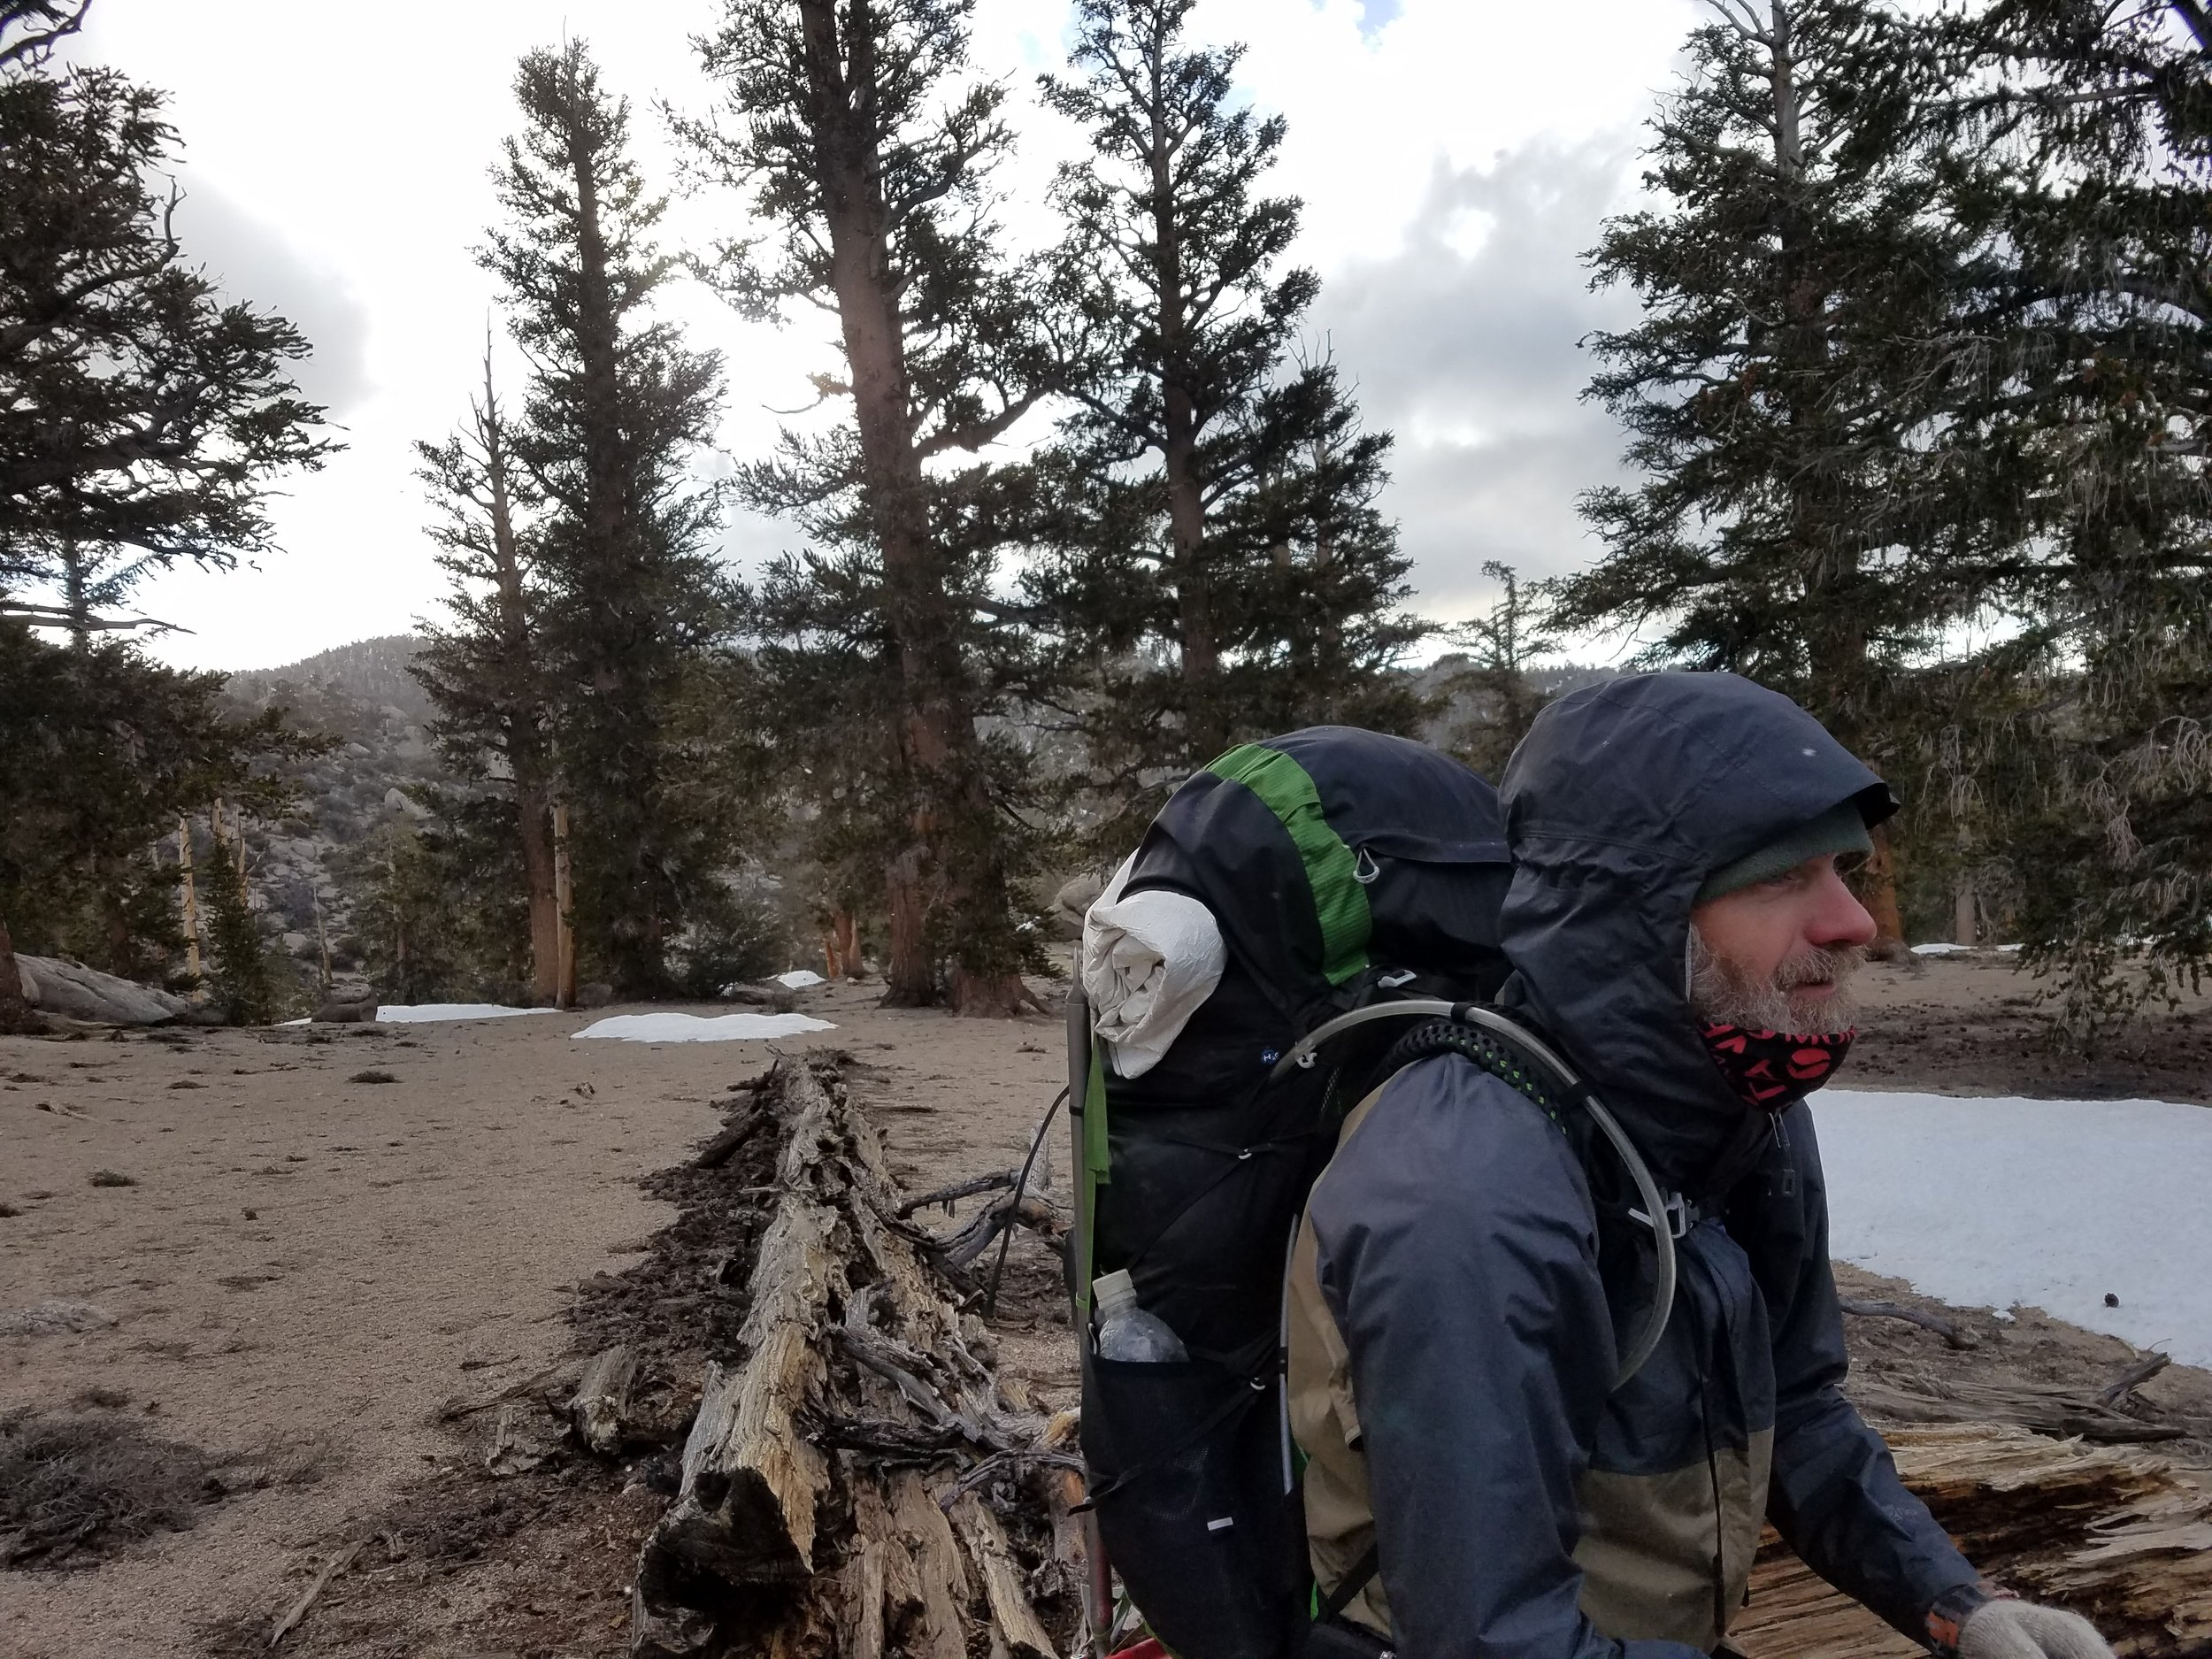 Road Dog bundled up for the cold morning hike up to Trail Pass.